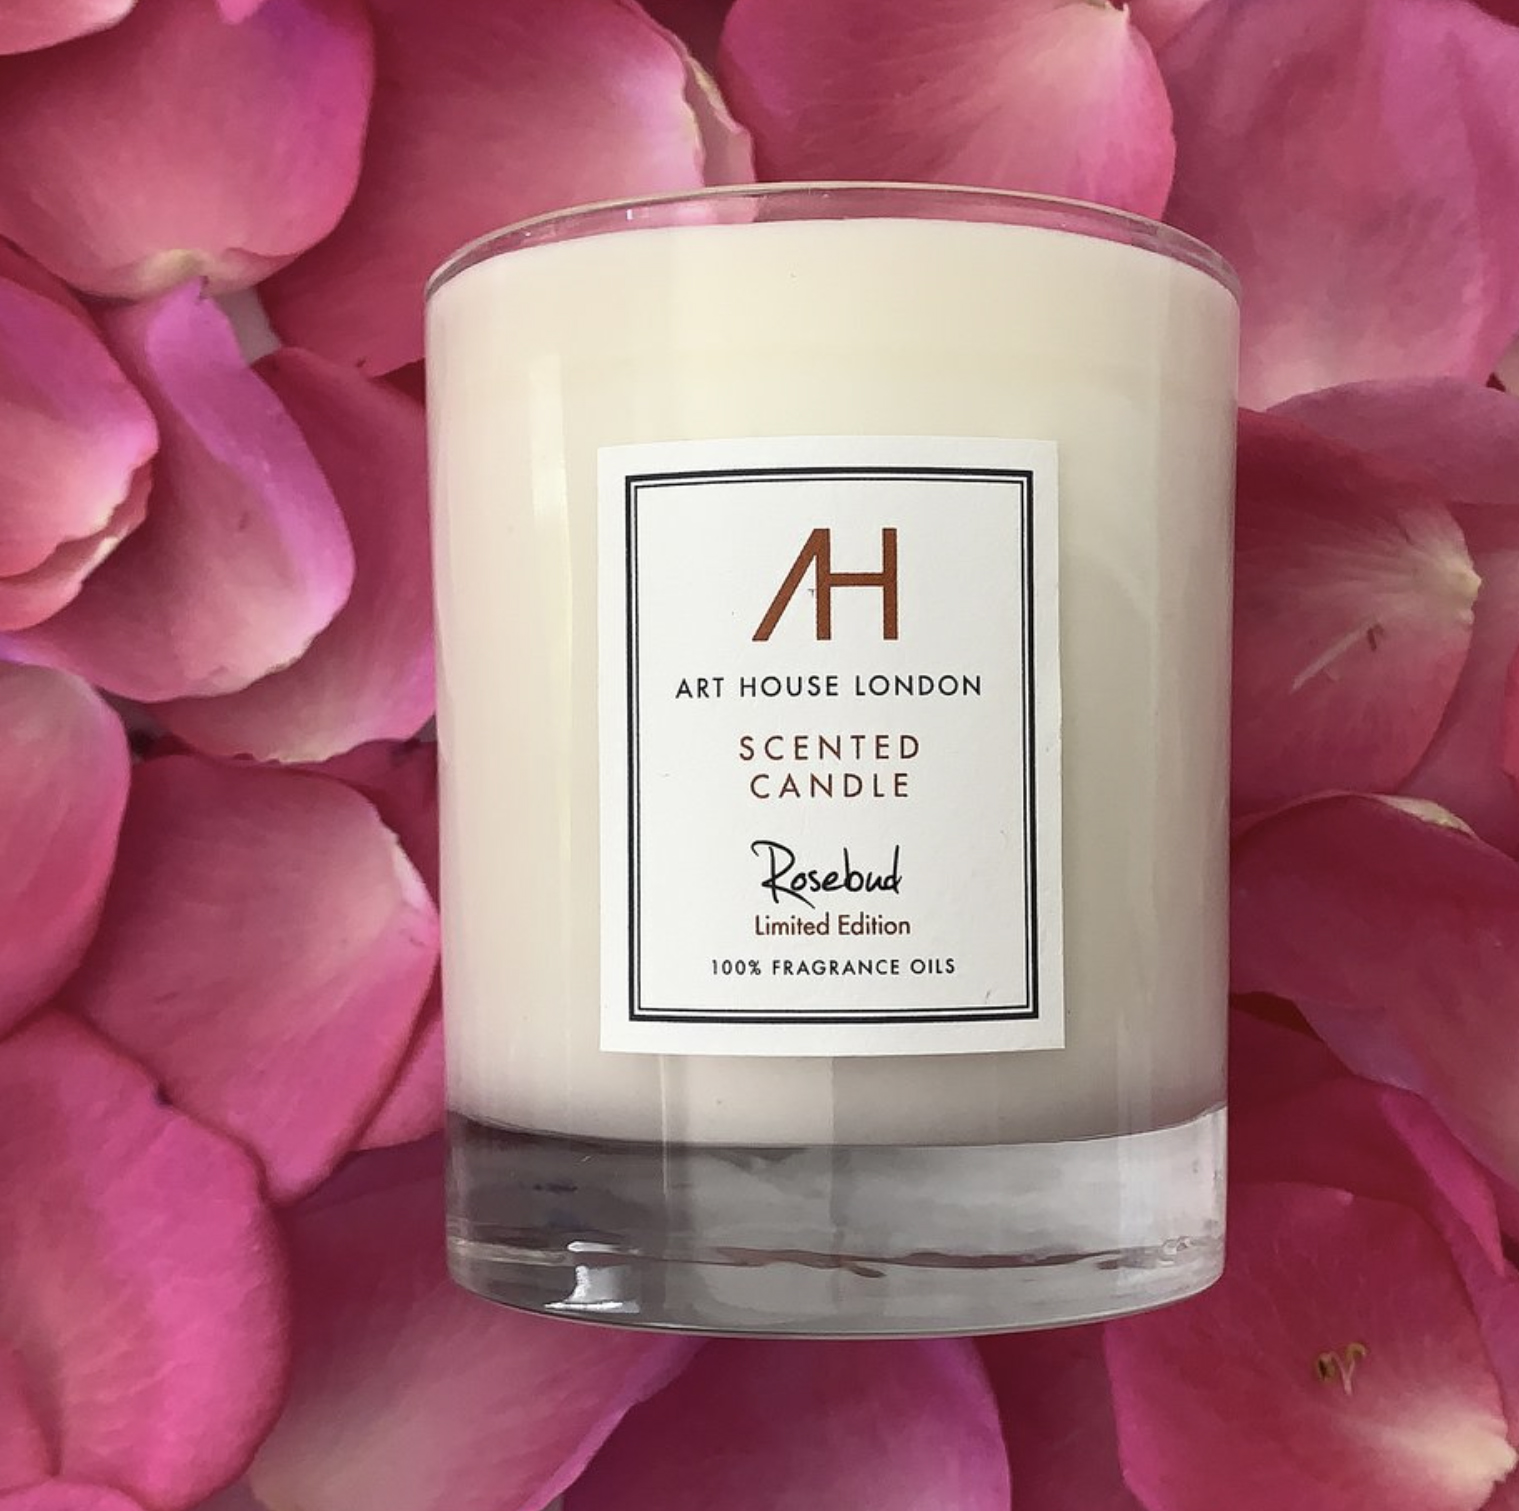 Art House London candles are hand-poured using soy and rapeseed waxes, 8 fragrances